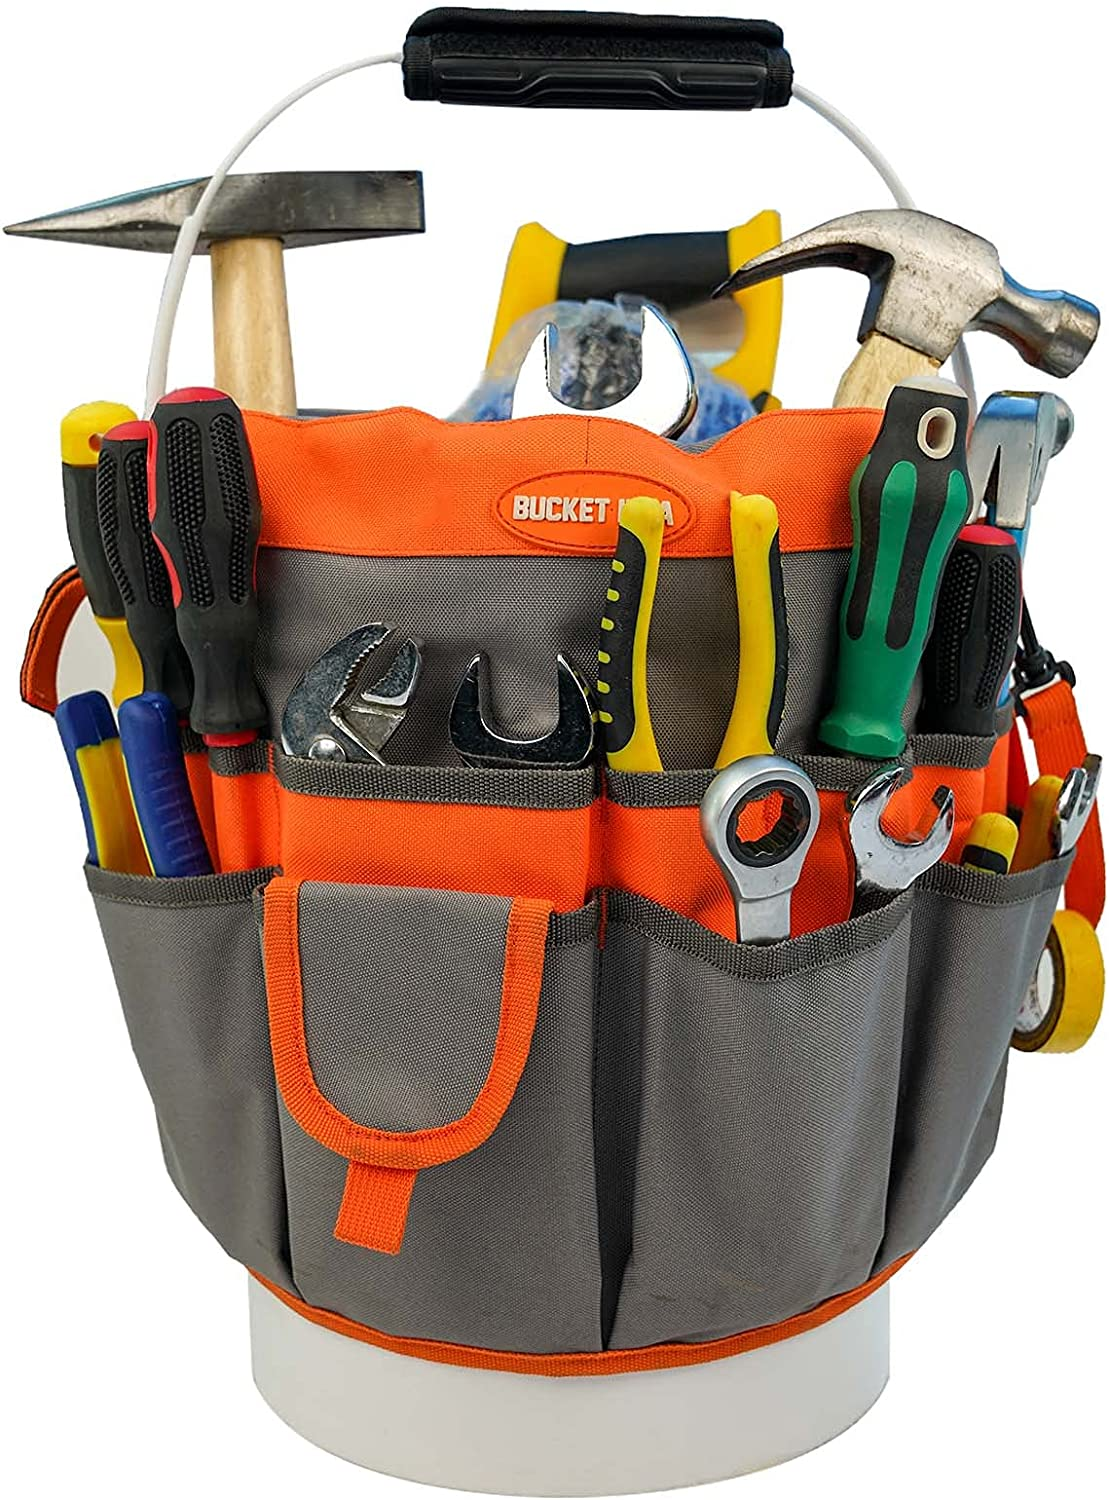 Bucket Super sale Idea Tool Organizer Fixed price for sale With 35 3.5-5 Pockets Fits to